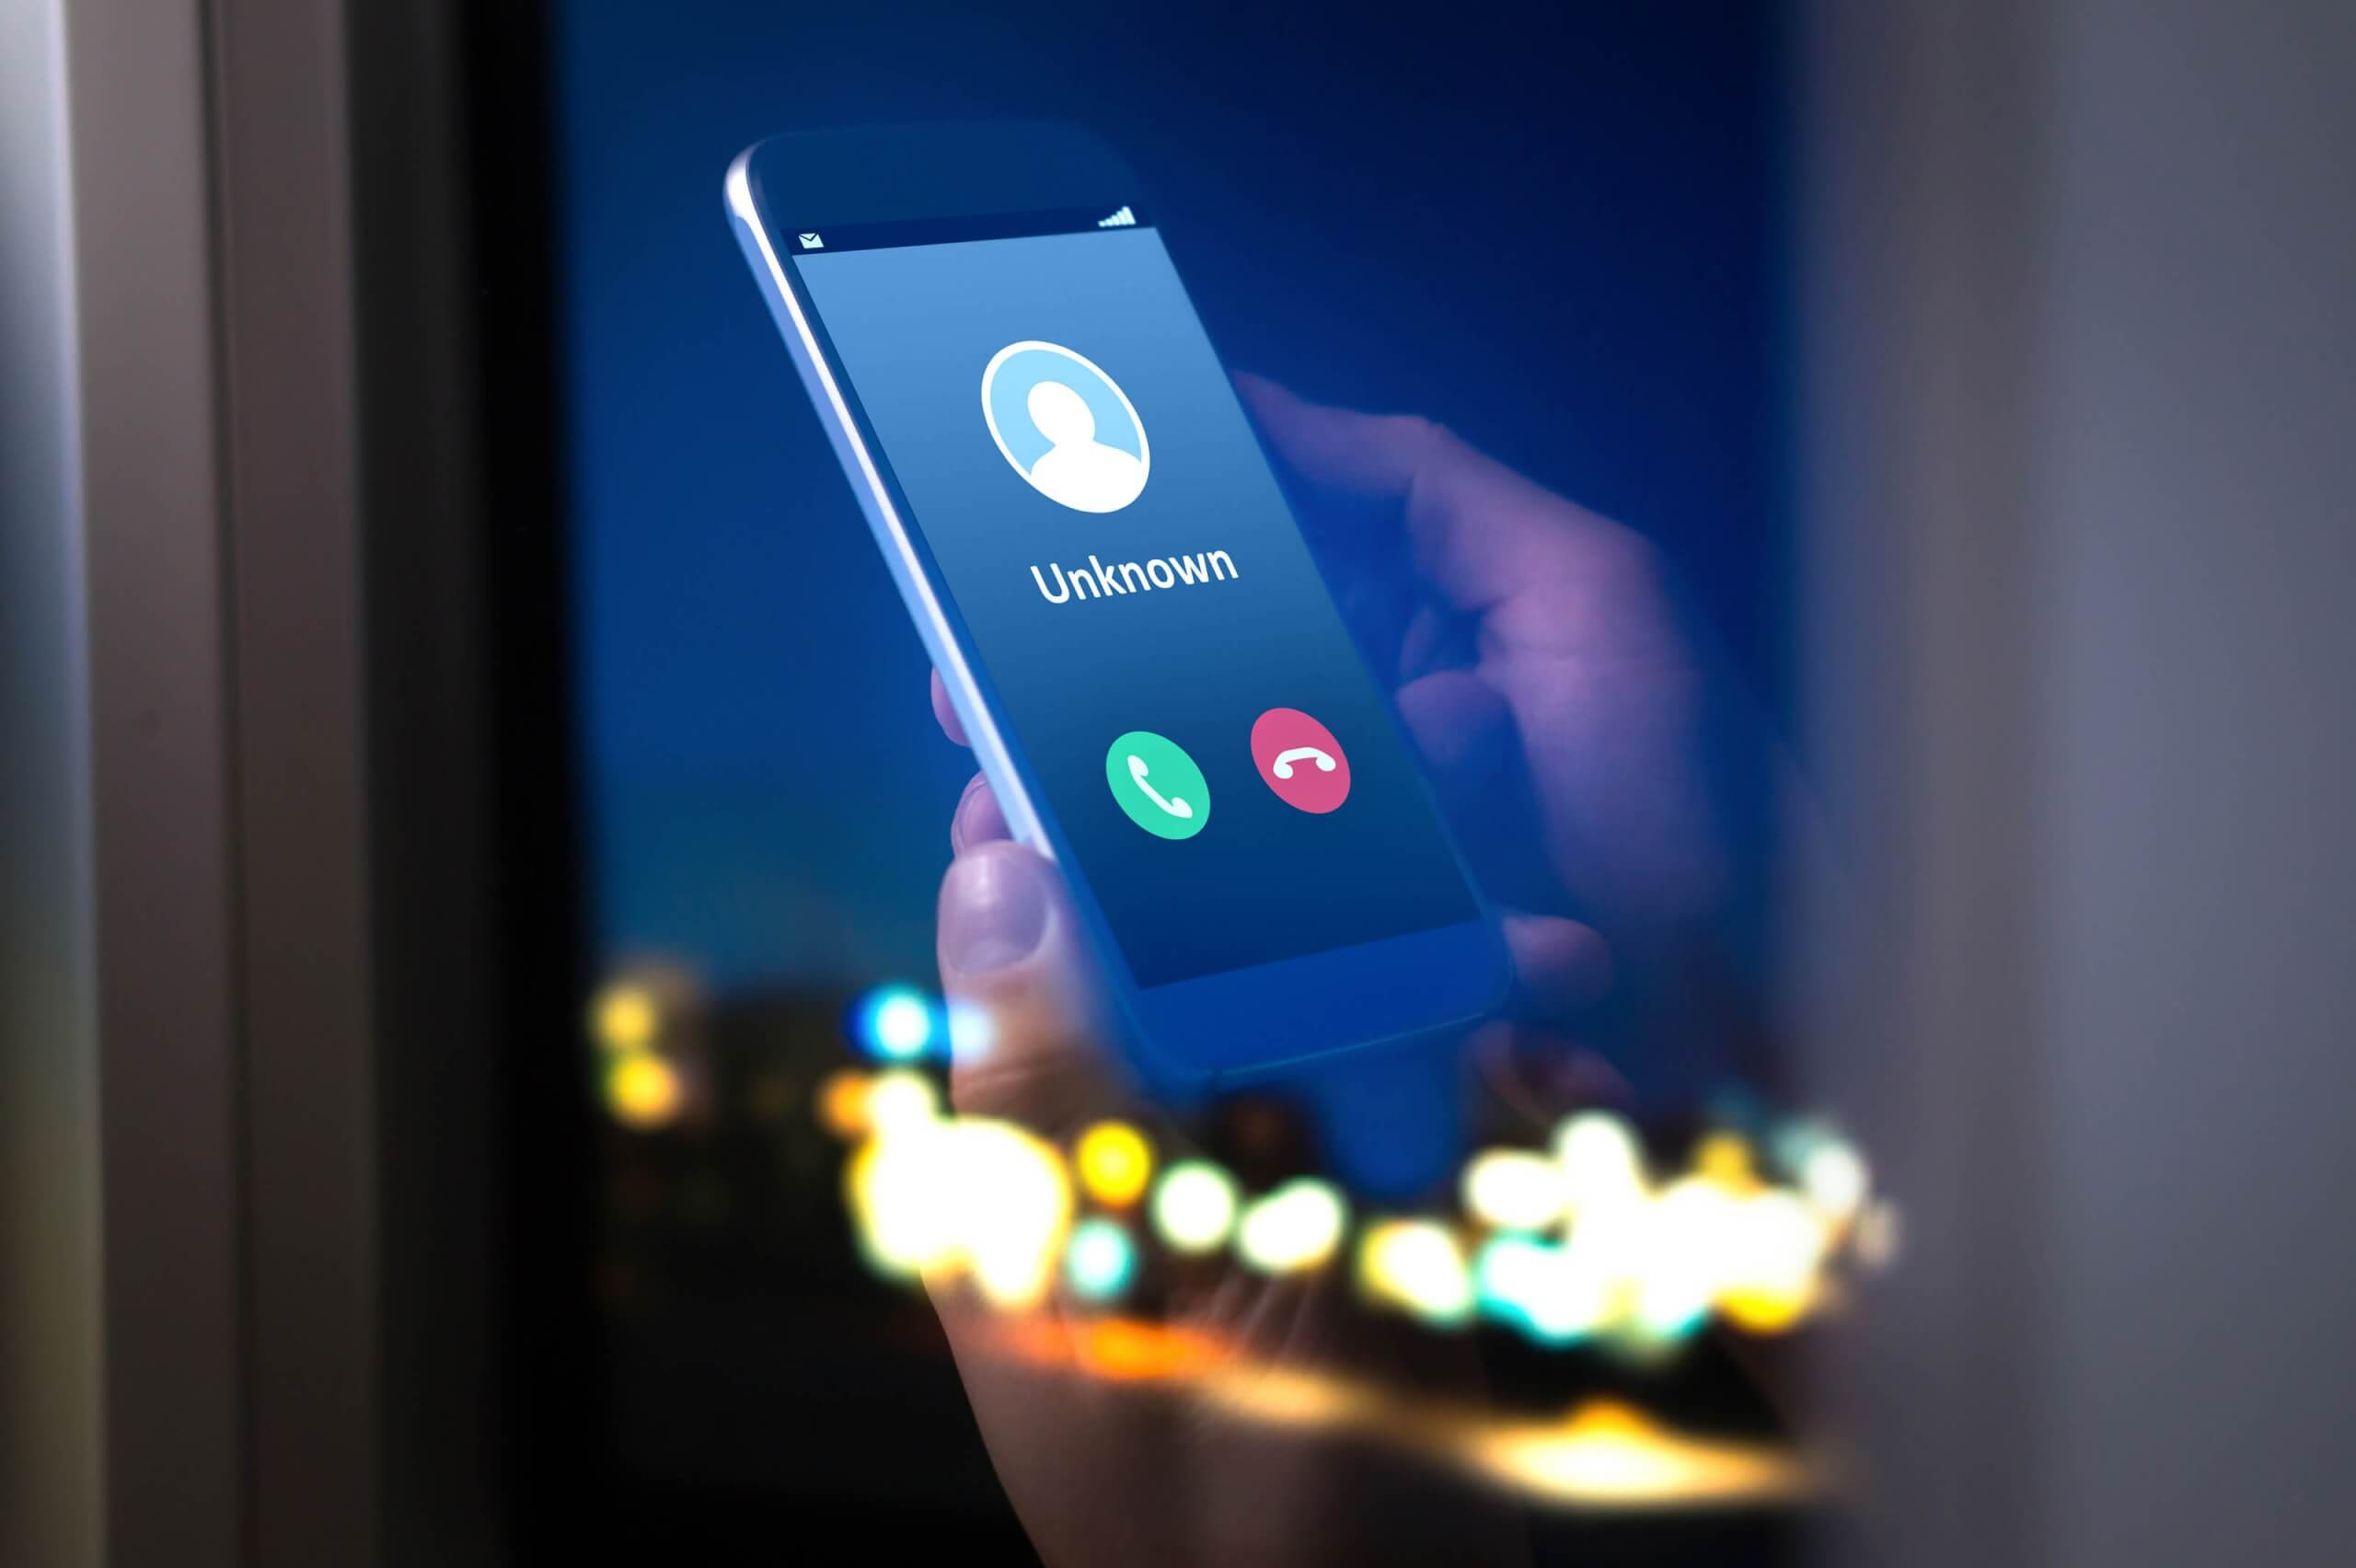 FTC shuts down four robocall companies with multimillion dollar fines